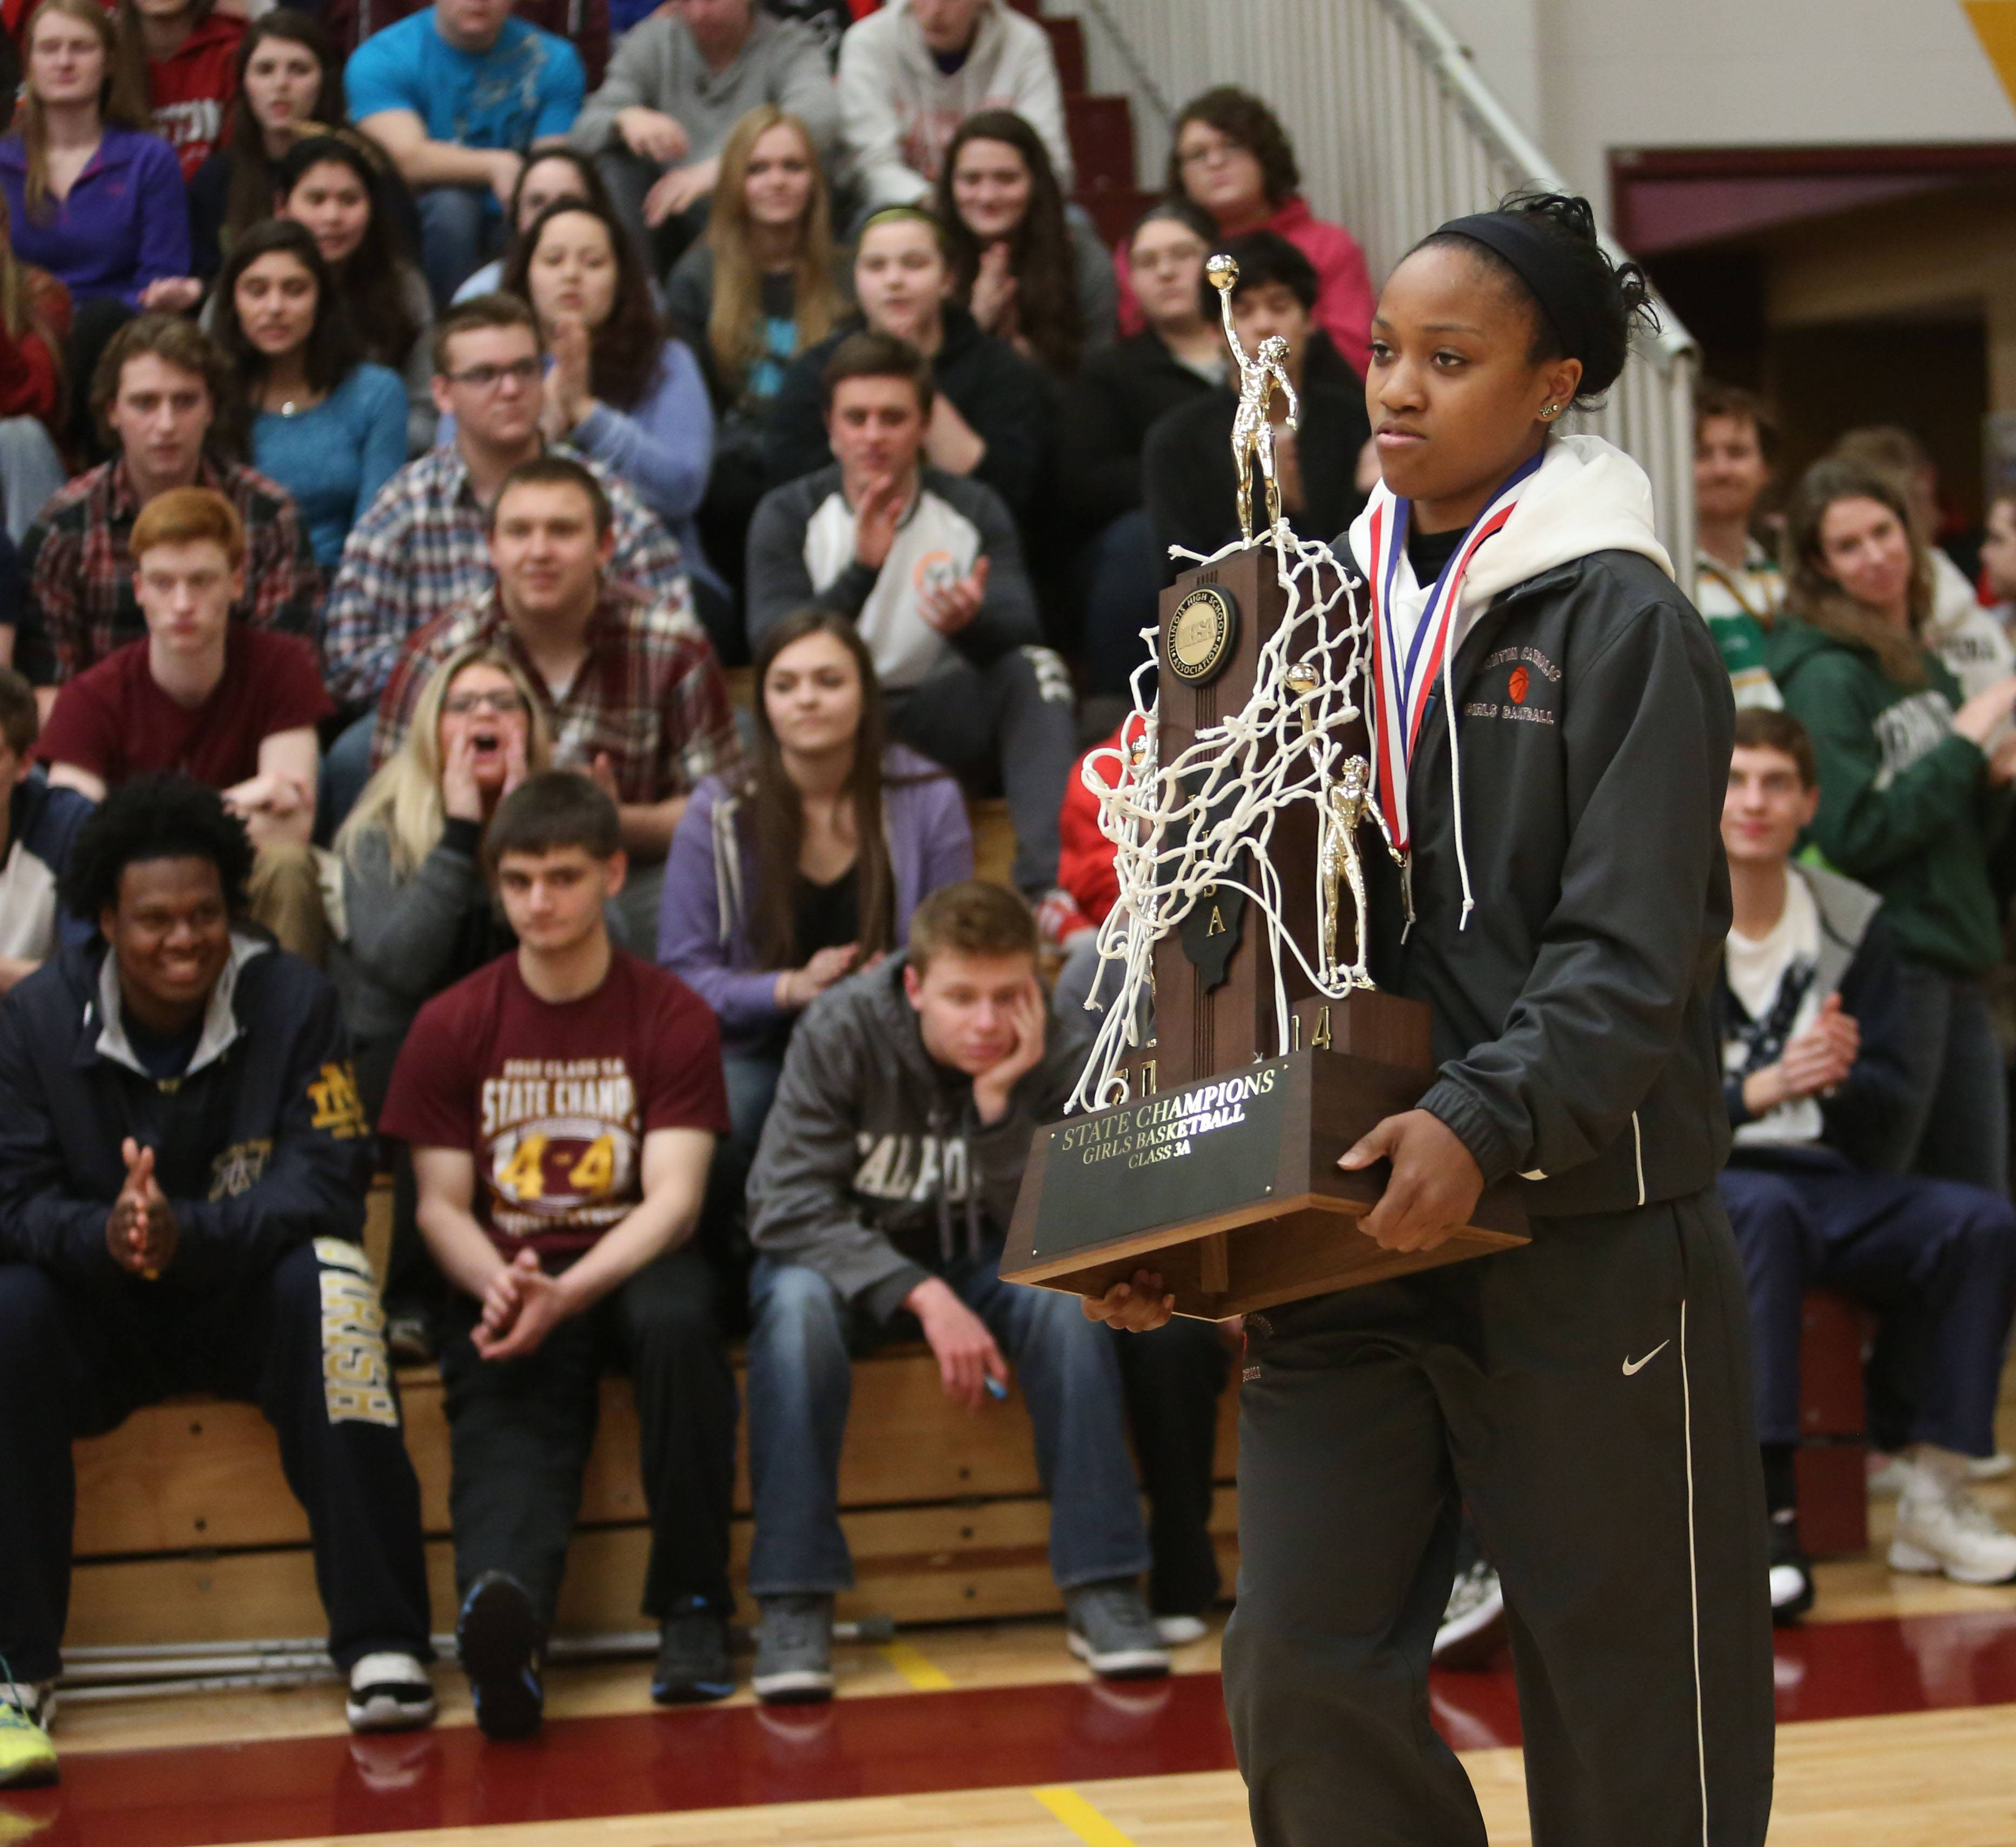 Sara Ross carries out the state championship trophy for the Montini Catholic High School girls basketball team during a pep rally Friday at the school. The team is celebrating its fourth state title in five years.